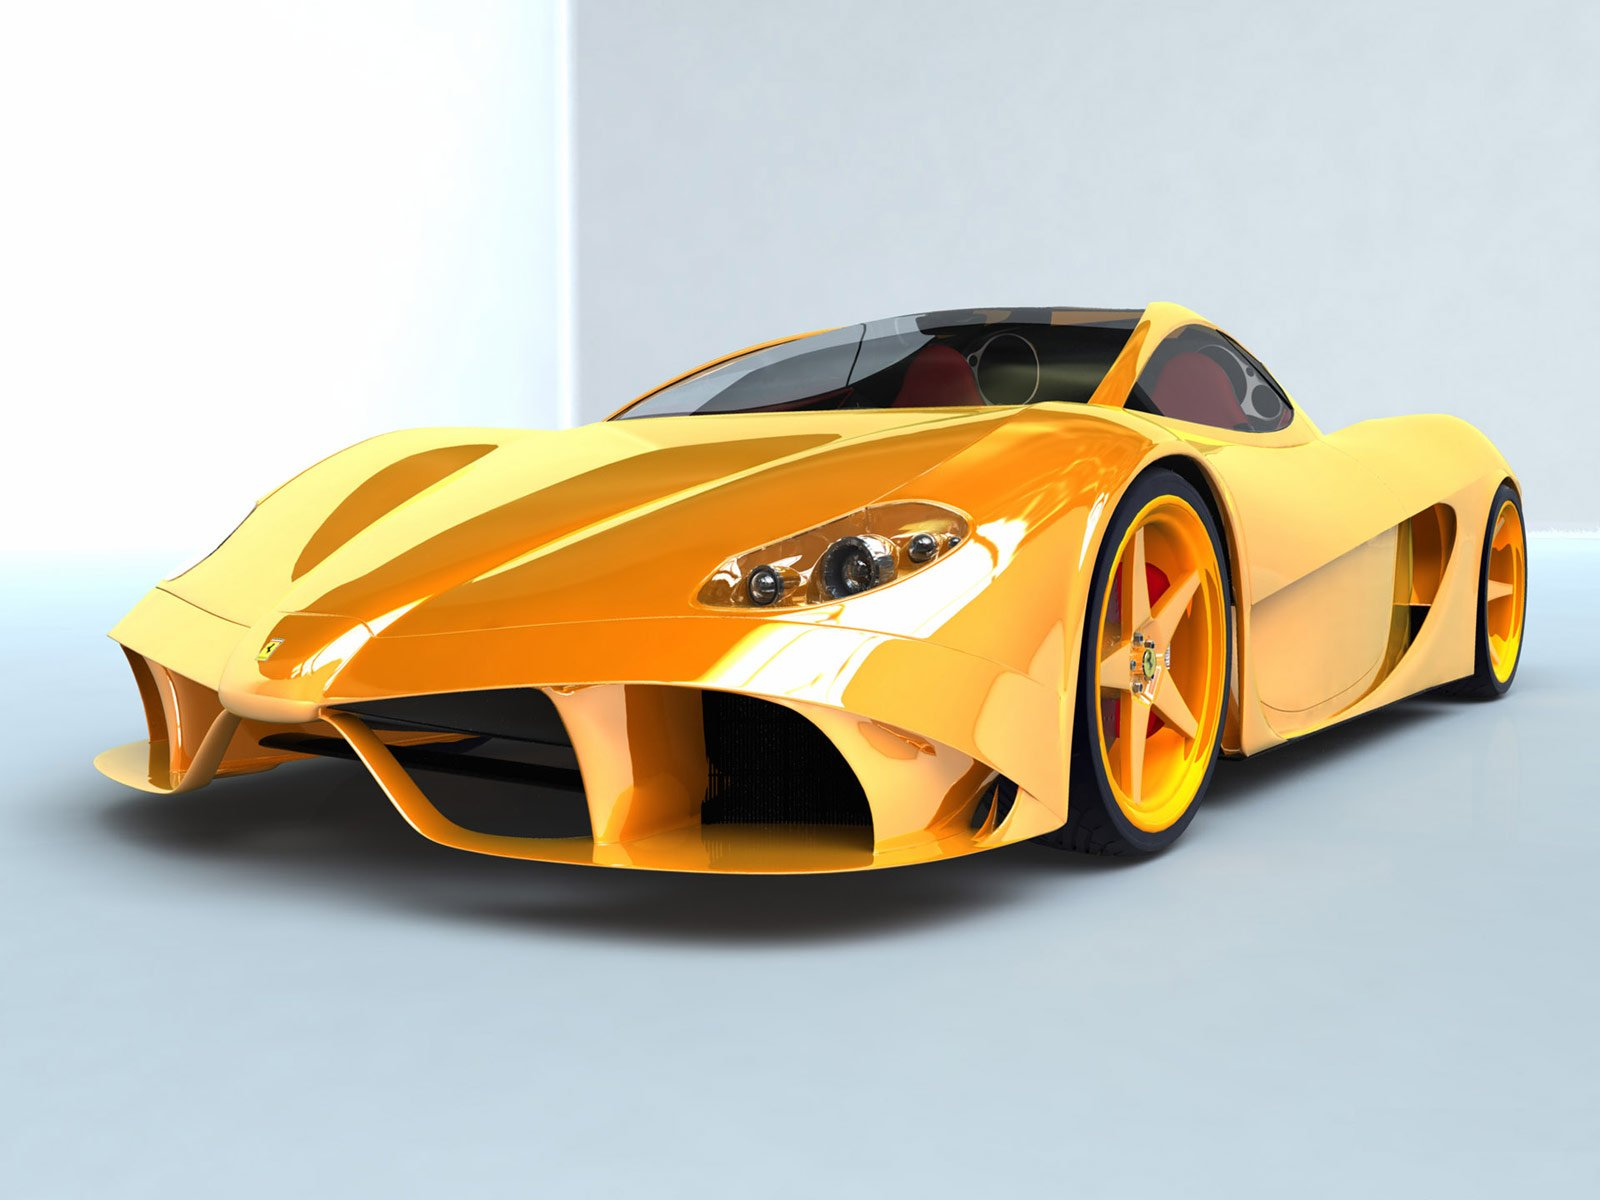 New cool cars wallpapers Cool Car Wallpapers 1600x1200